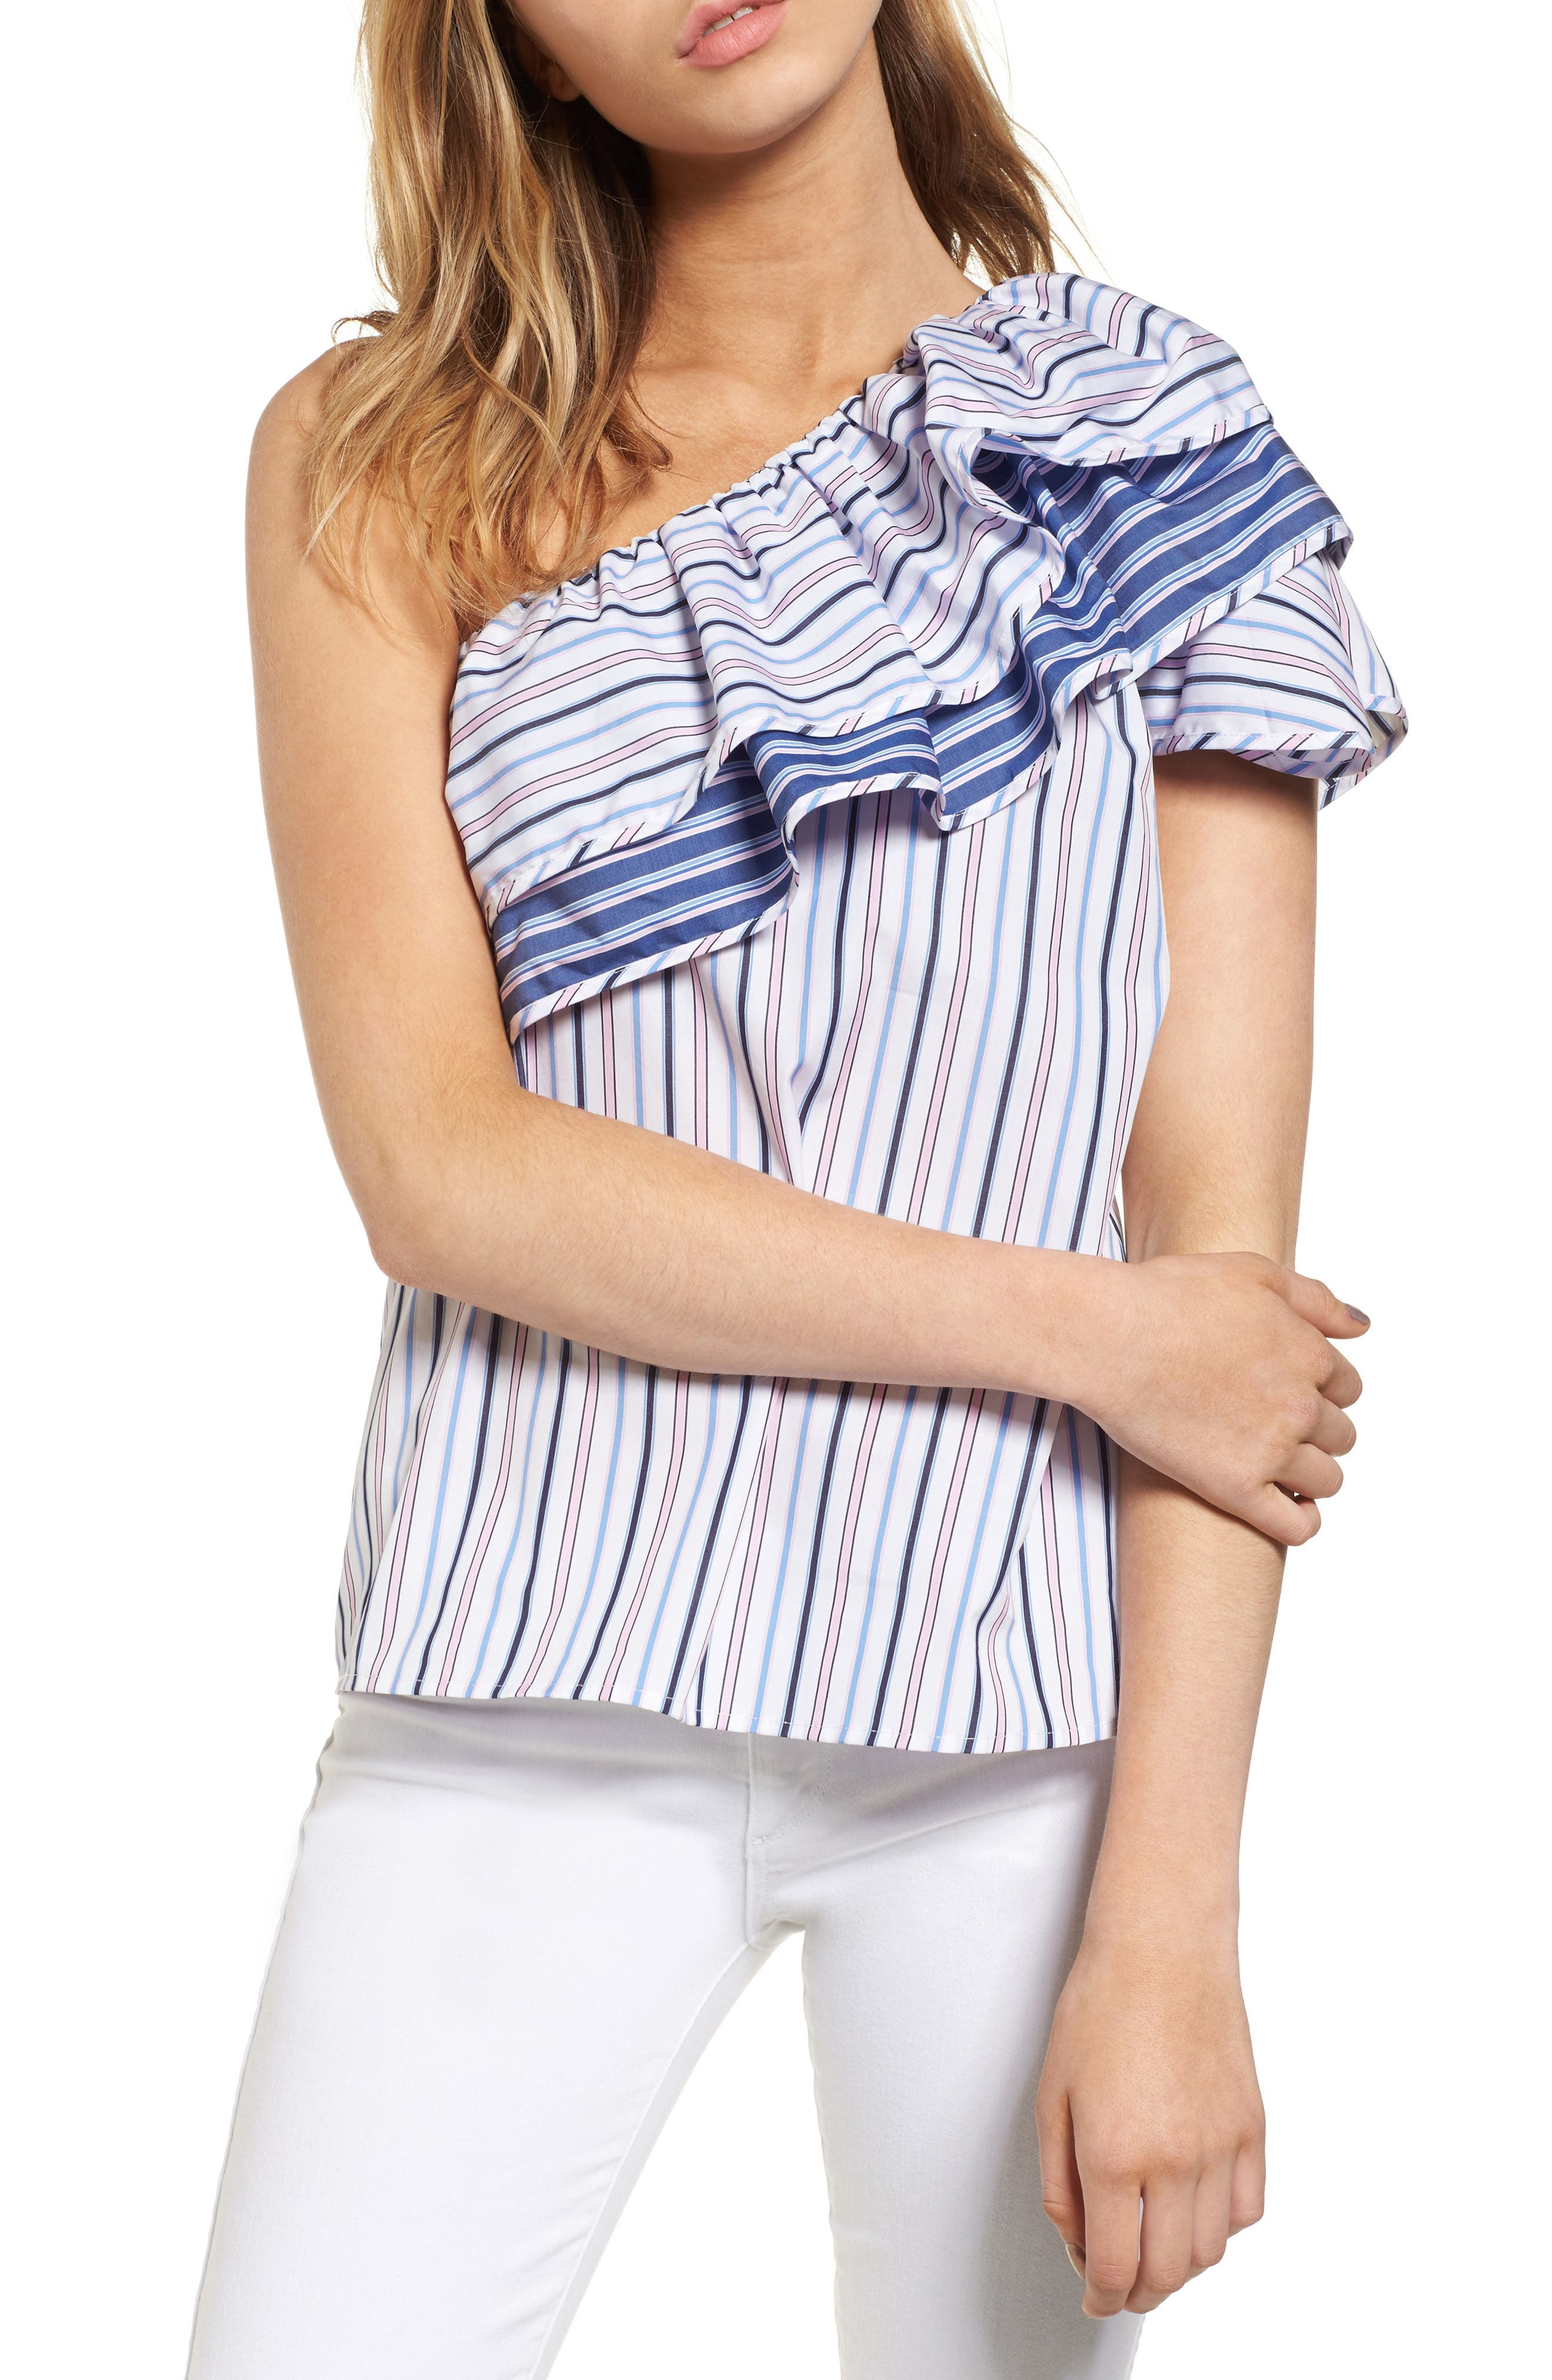 Mary One-Shoulder Top,                             Main thumbnail 1, color,                             400